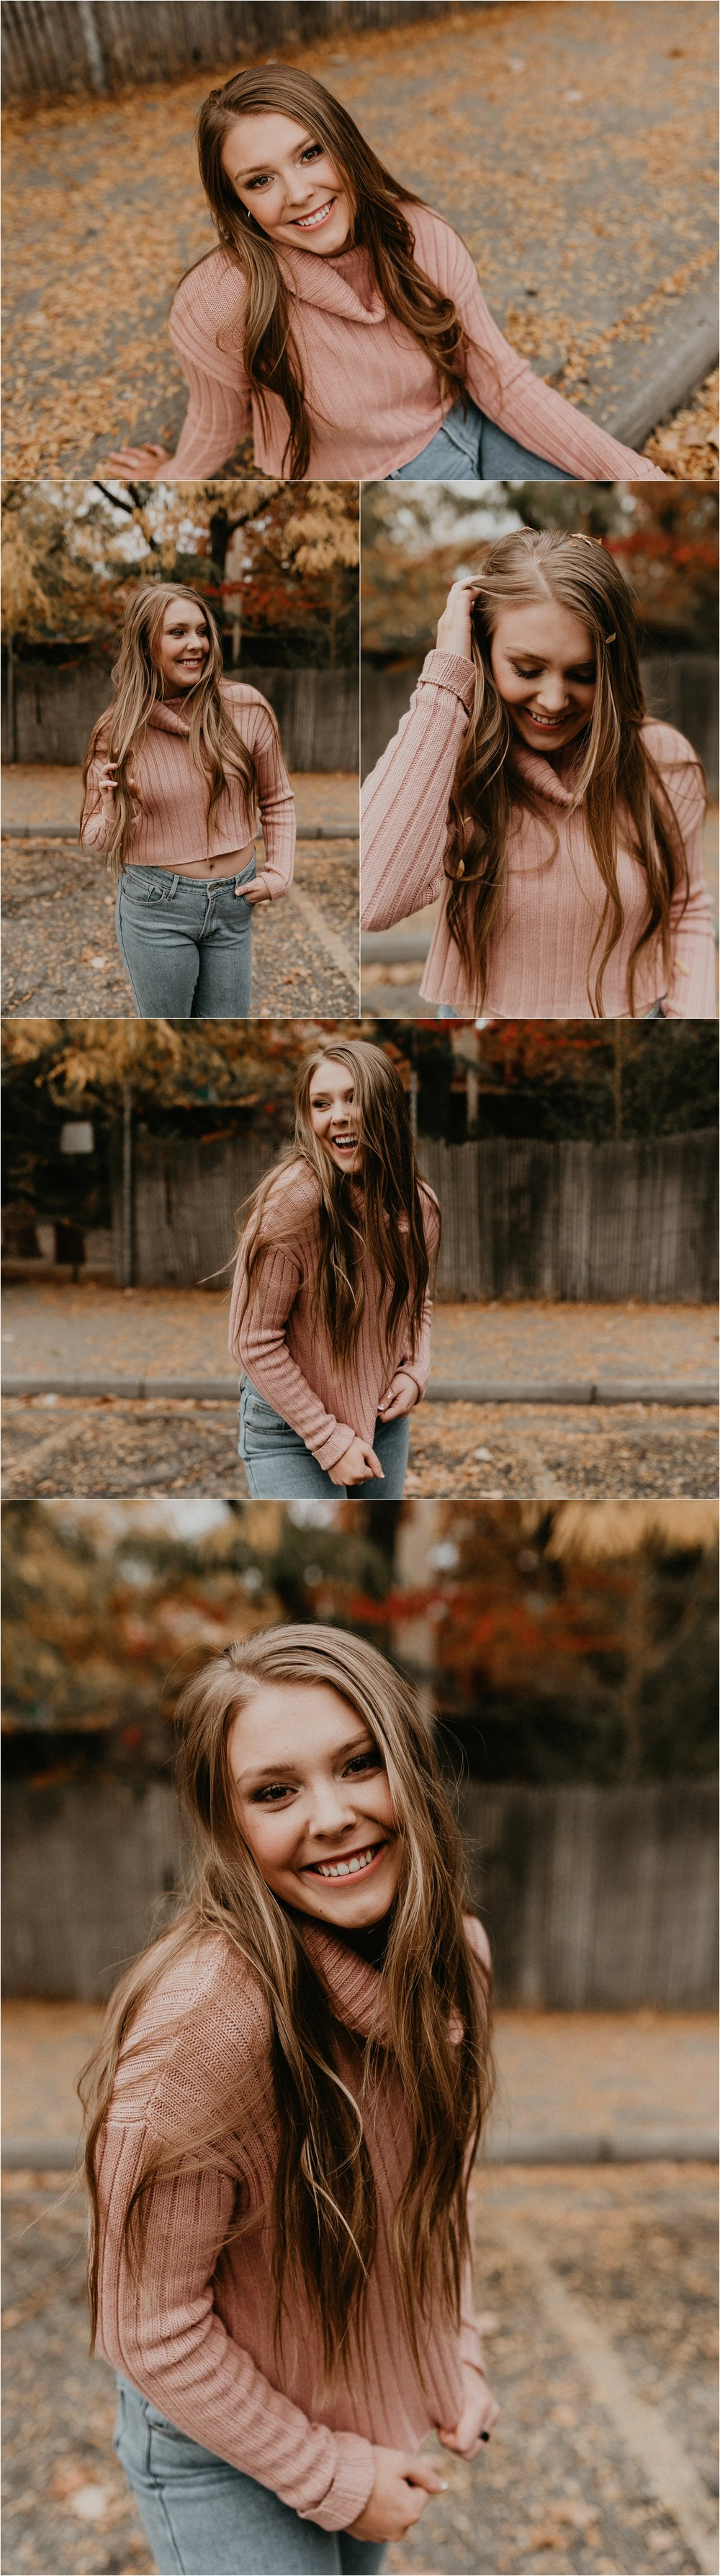 Boise Senior Photographer Makayla Madden Photography Idaho Senior Pictures Downtown Boise Fall Photos Leaves Sweater Senior Girl Fun Unique